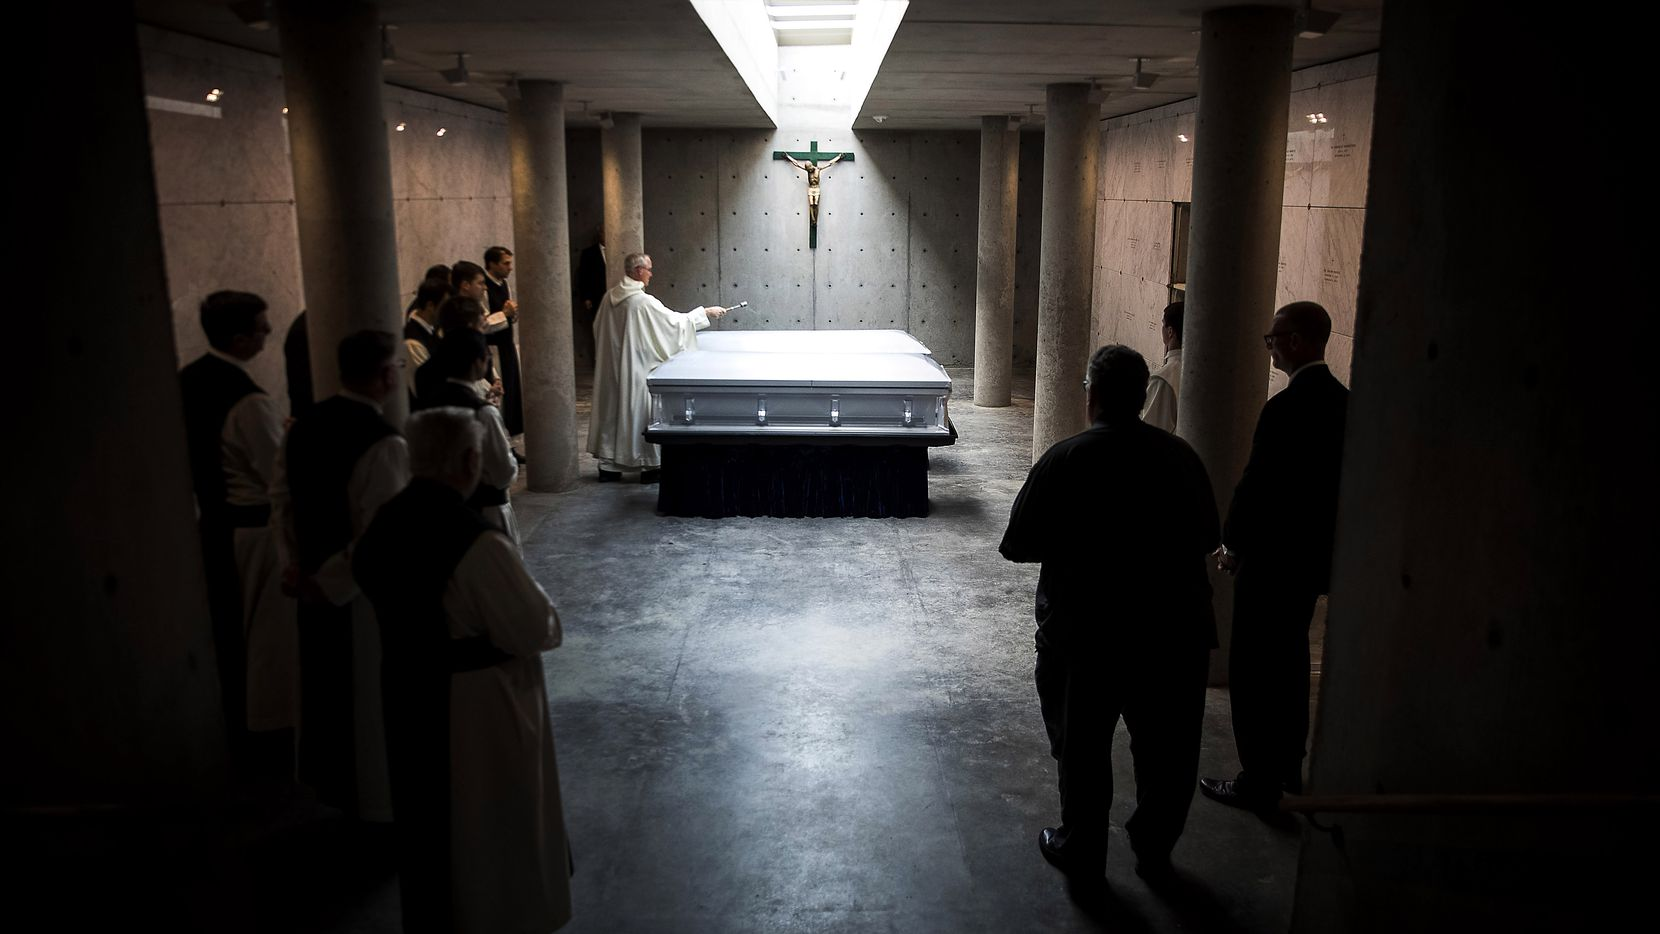 The Rev. Peter Verhalen, abbot of Cistercian Abbey Our Lady of Dallas, sprinkles holy water on the caskets of the Revs. Damian Szodenyi and Rudolph Zimanyi during their entombment service.